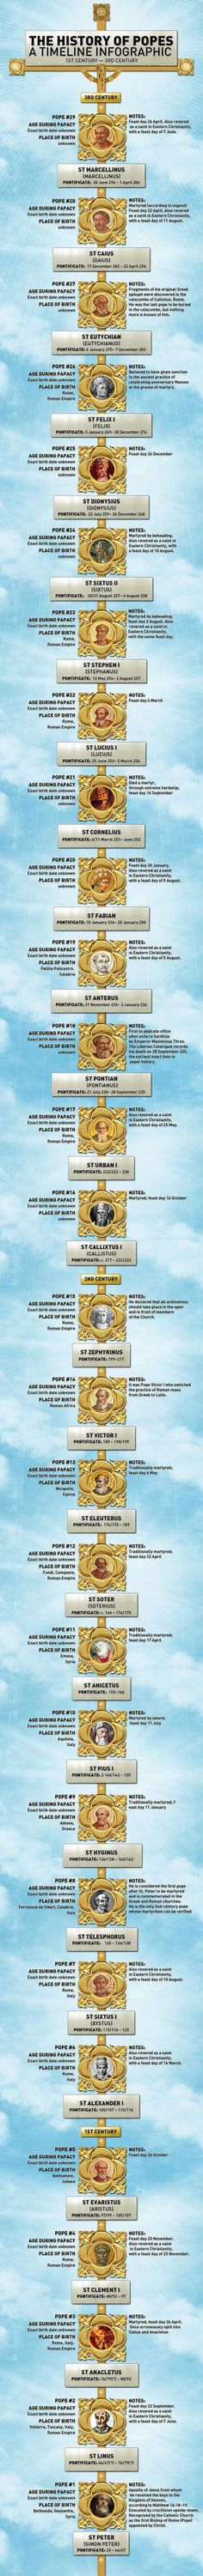 Timeline of Popes. This part focuses on the popes from the 1st to the 3rd century.